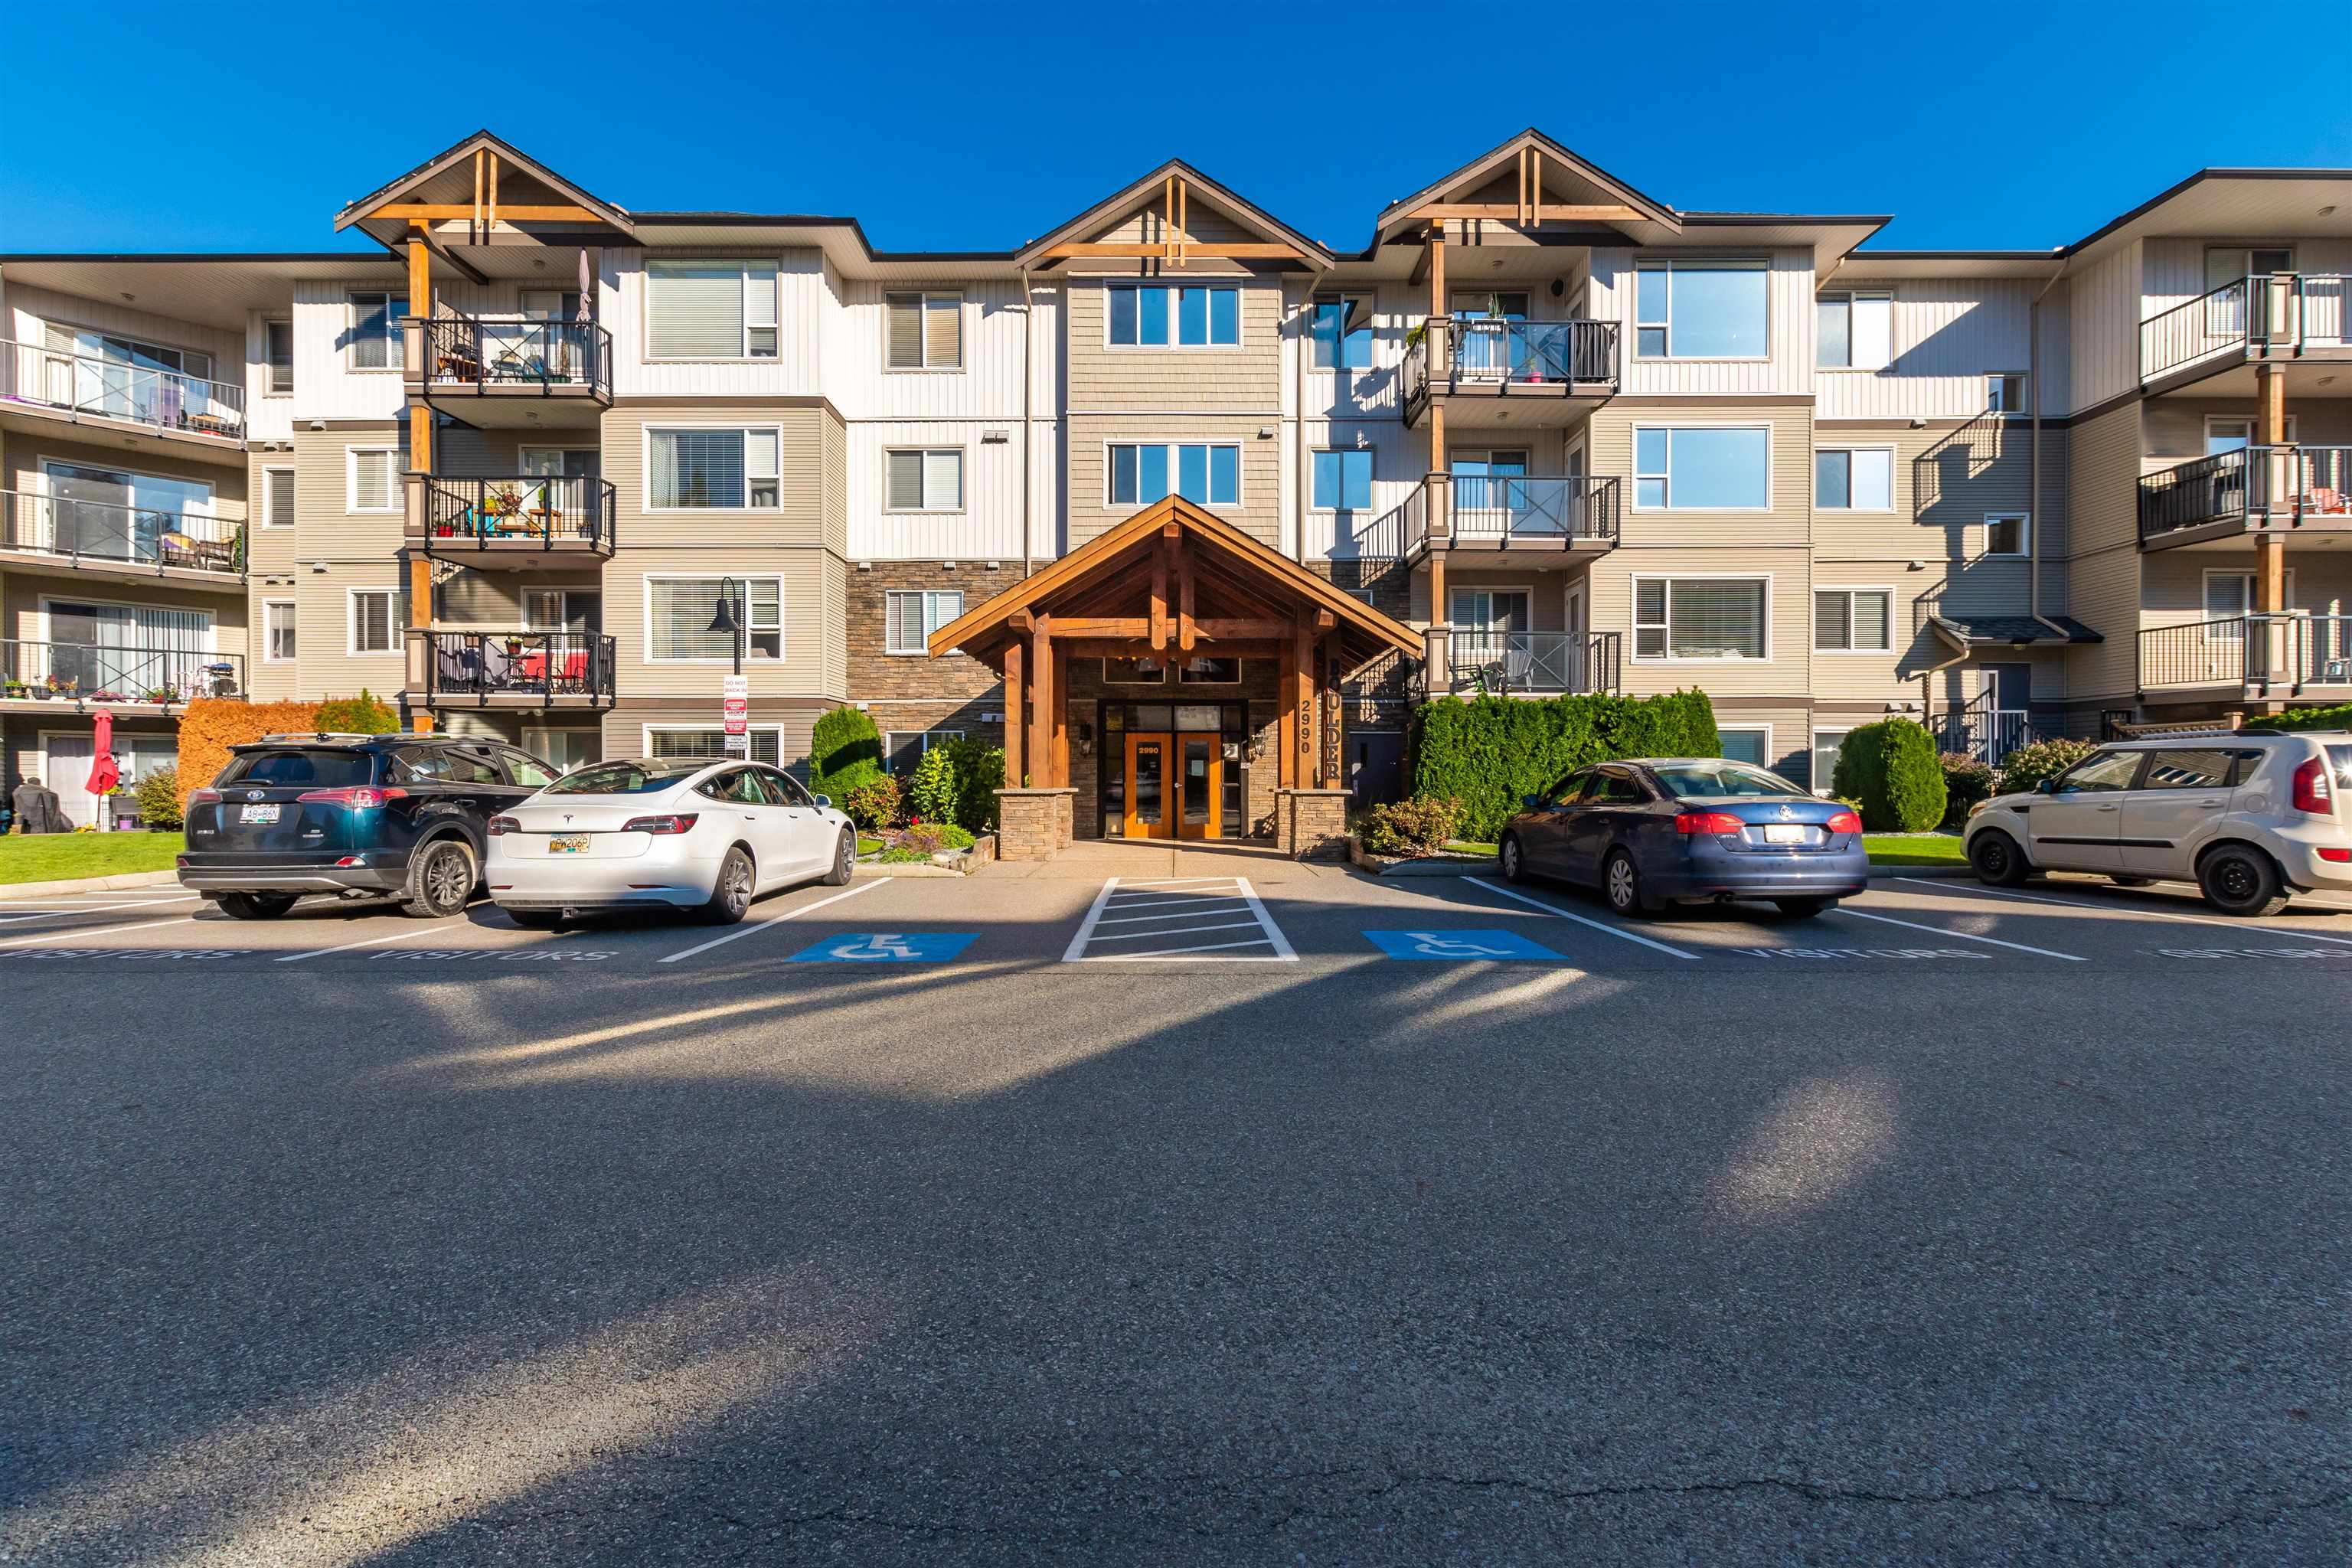 311 2990 BOULDER STREET - Abbotsford West Apartment/Condo for sale, 2 Bedrooms (R2624735) - #1